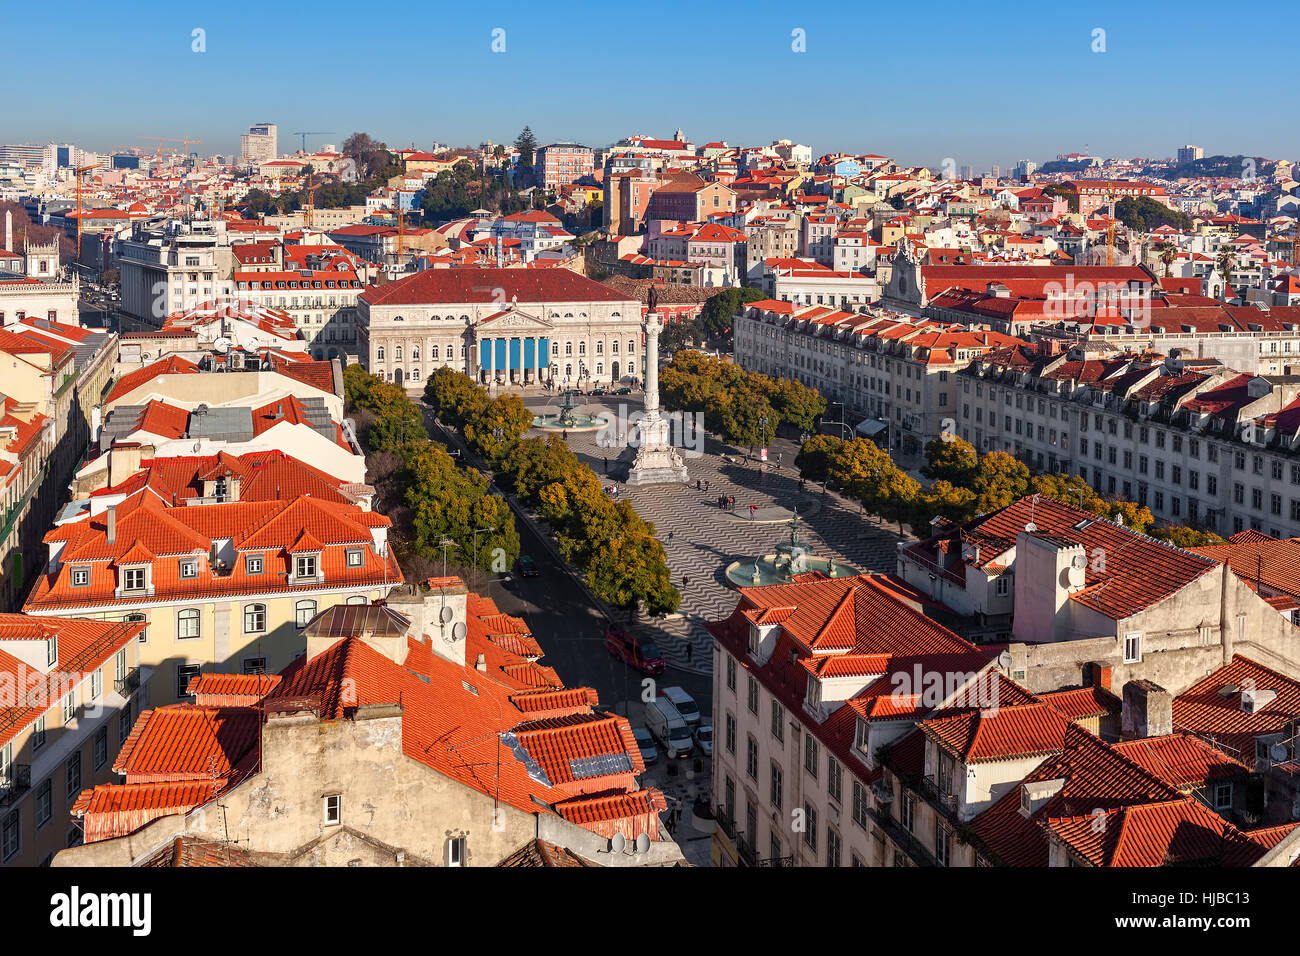 View from above on Rossio Square an red roofs in Lisbon, Portugal. - Stock Image